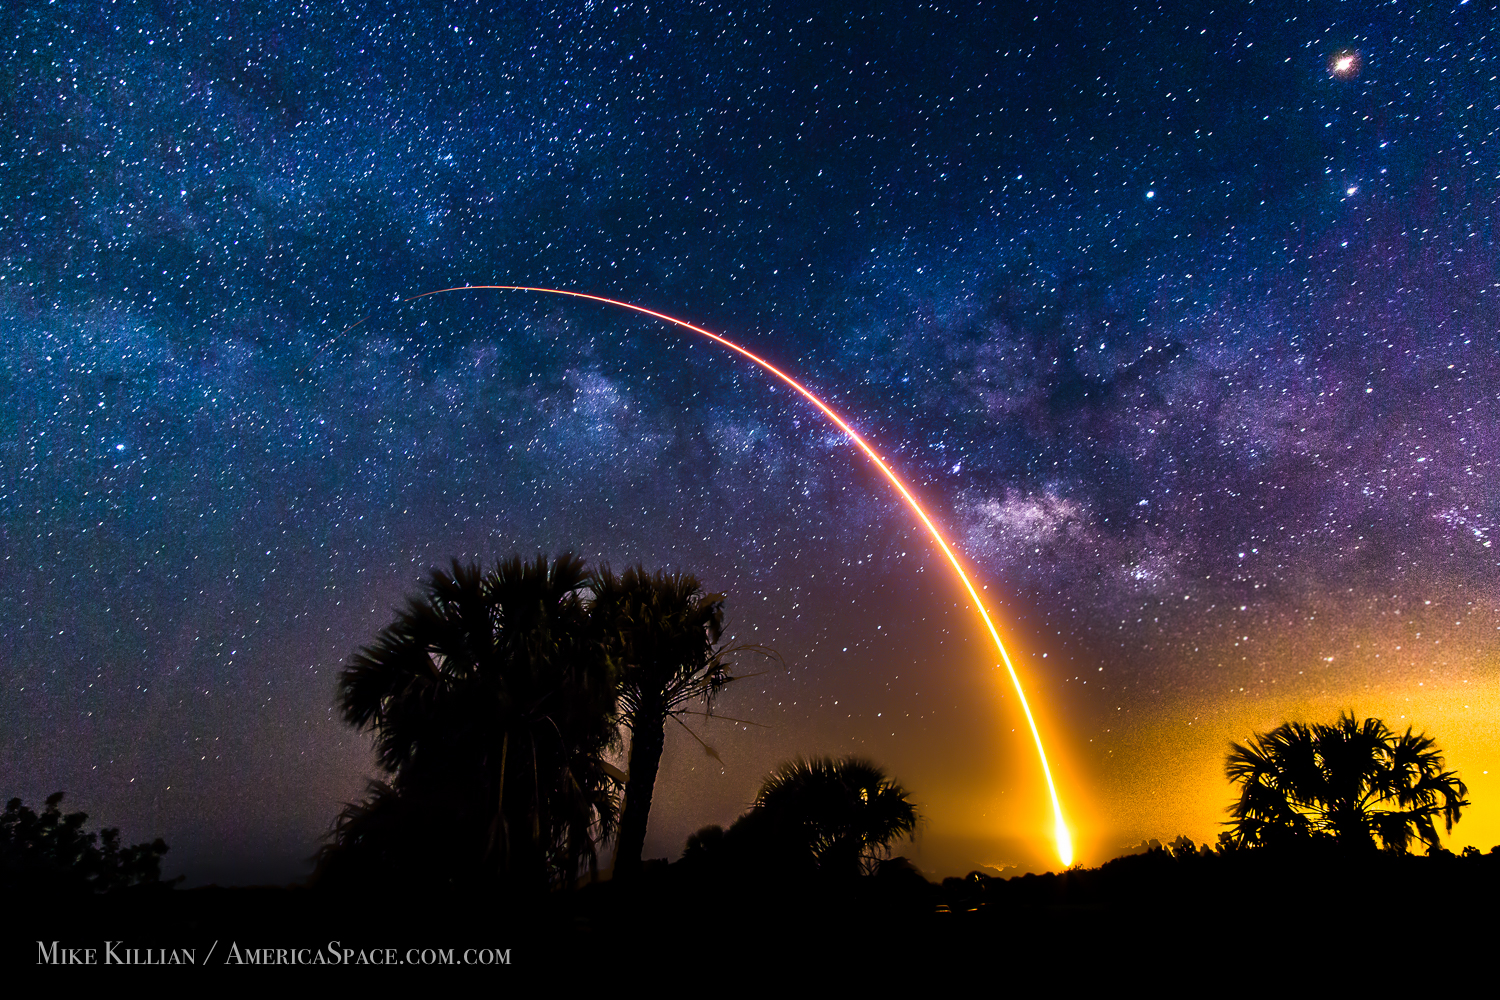 Havasu Falls Iphone 6 Wallpaper Spacex S Falcon 9 Rocket Heads For The Stars In Stunning Photo